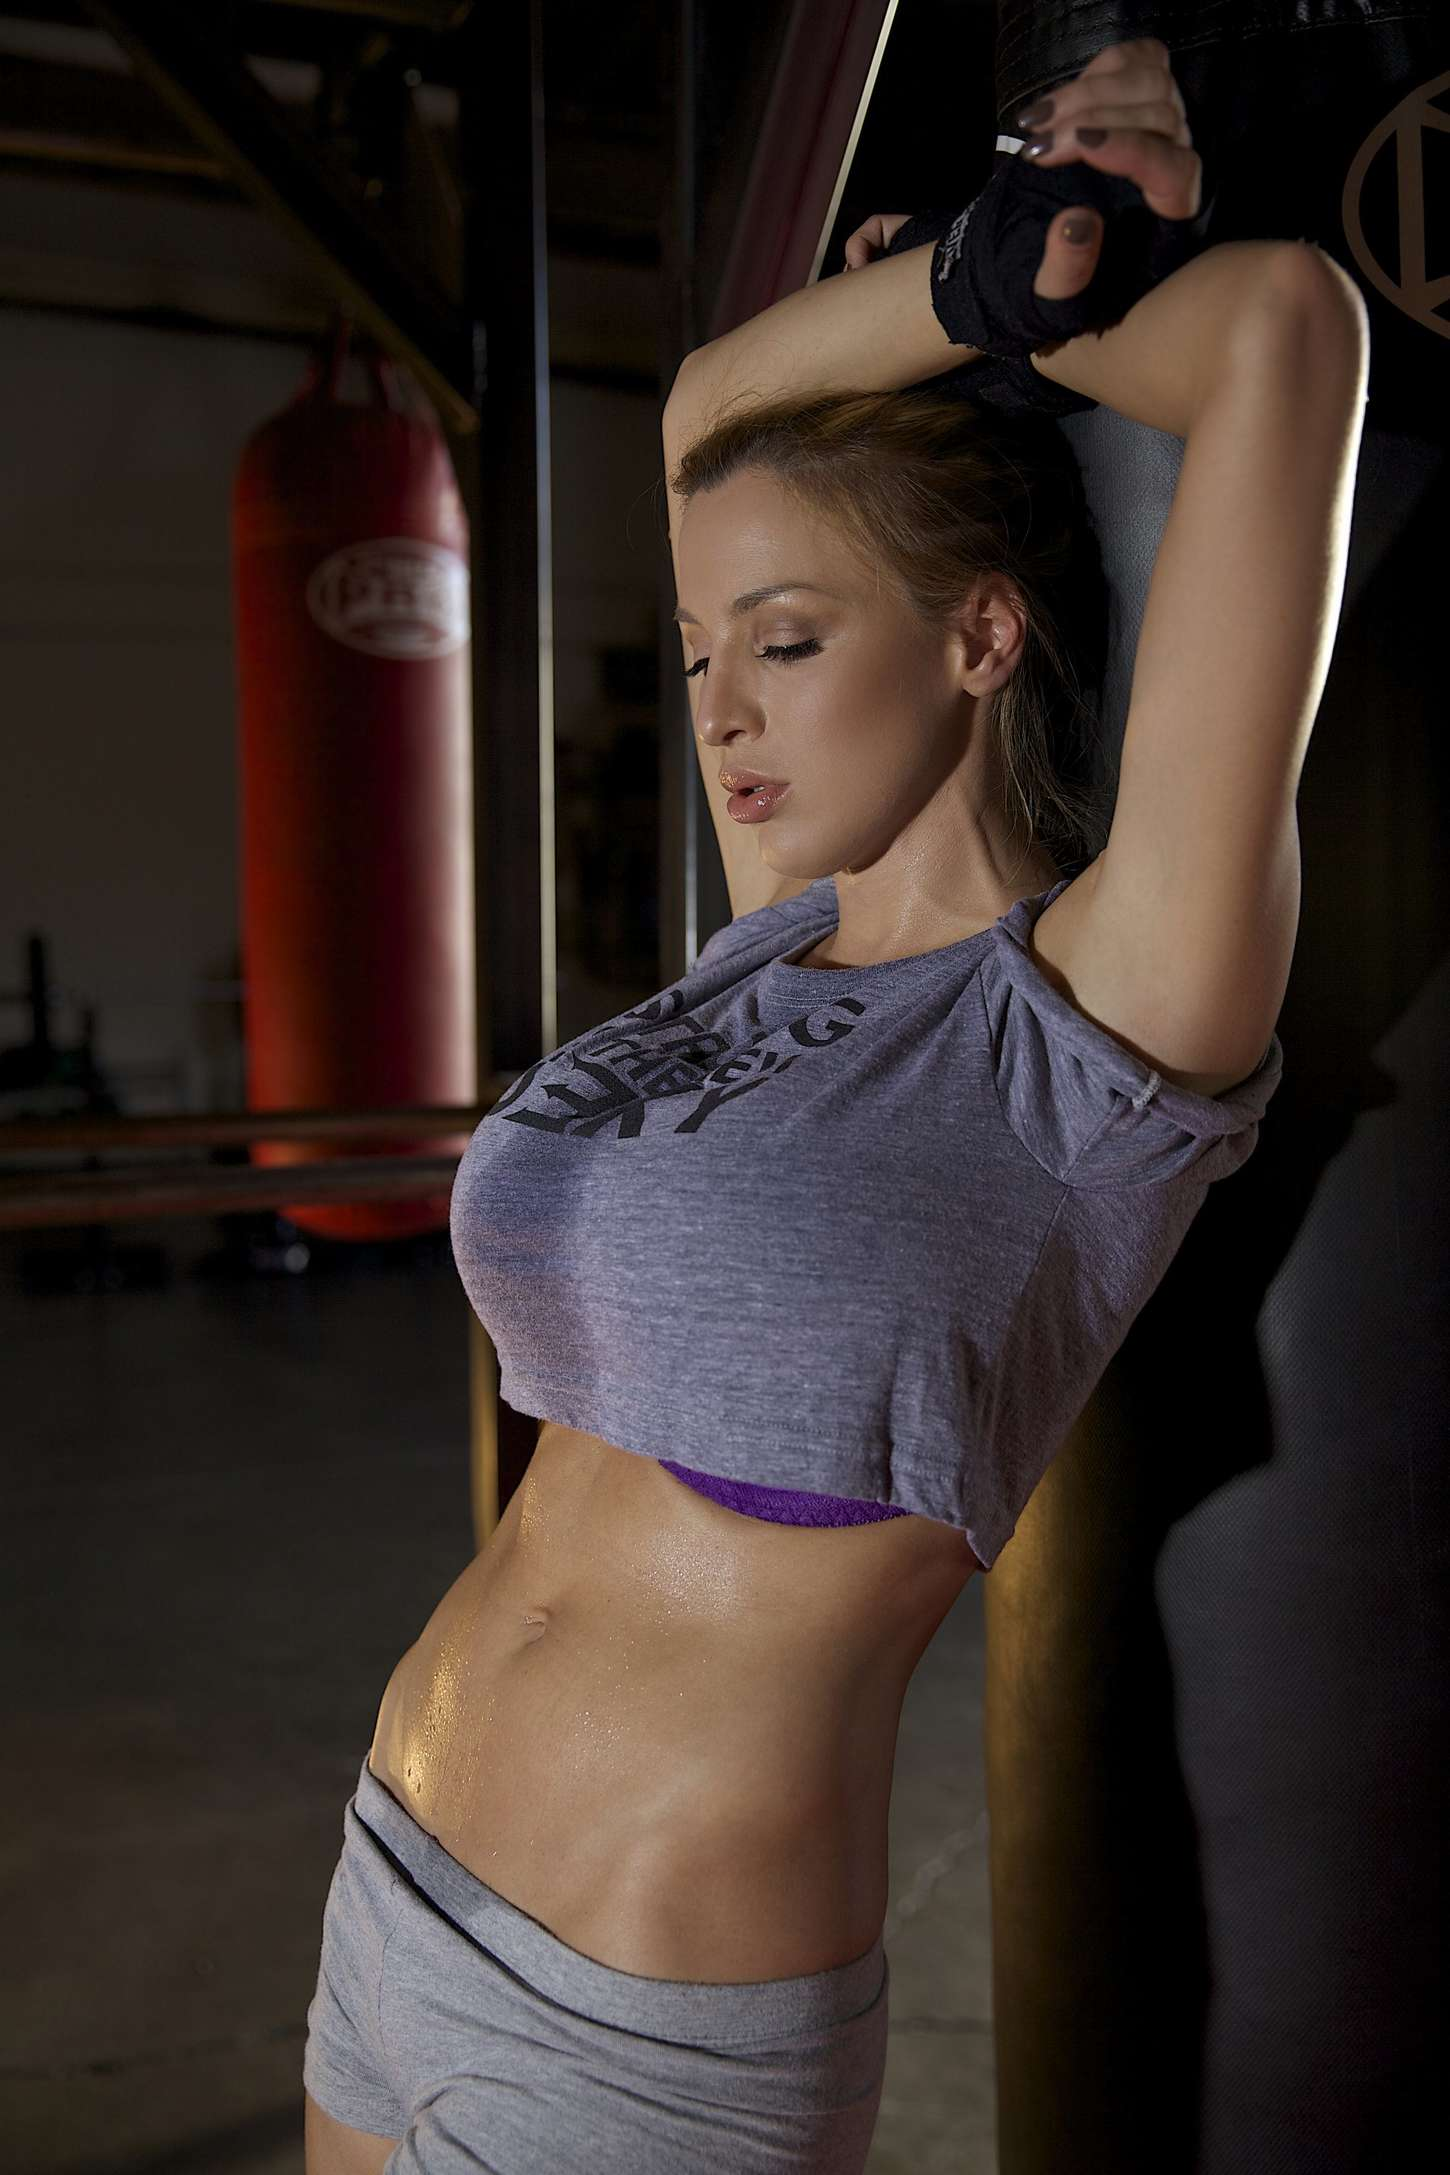 Jordan Carver Nude Photos 6